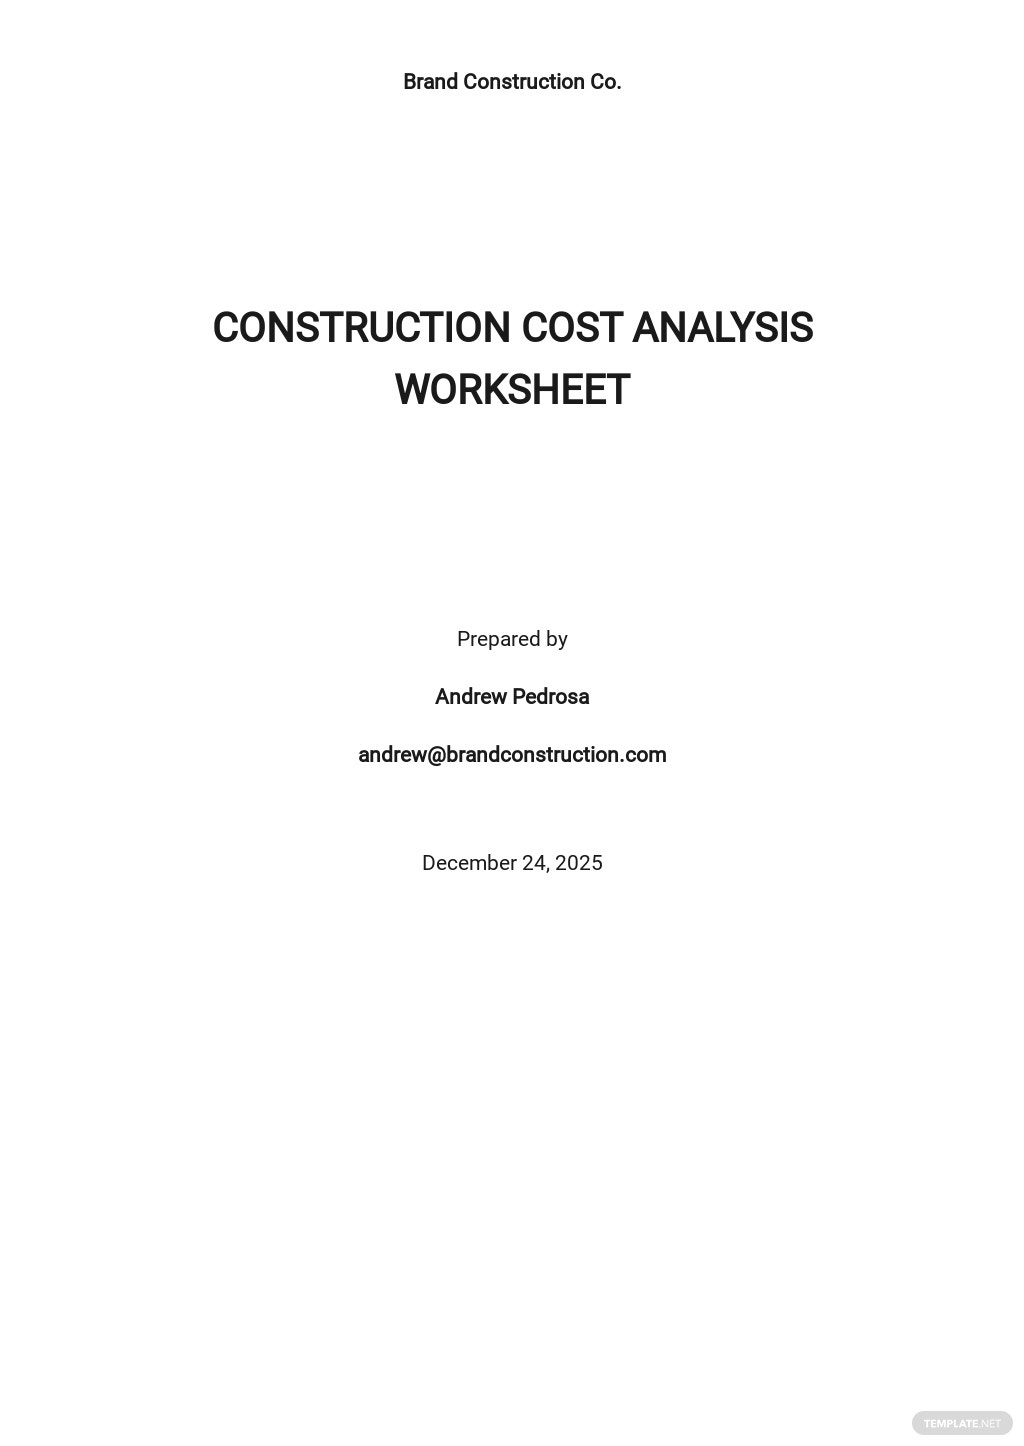 Construction Cost Analysis Worksheet Template.jpe